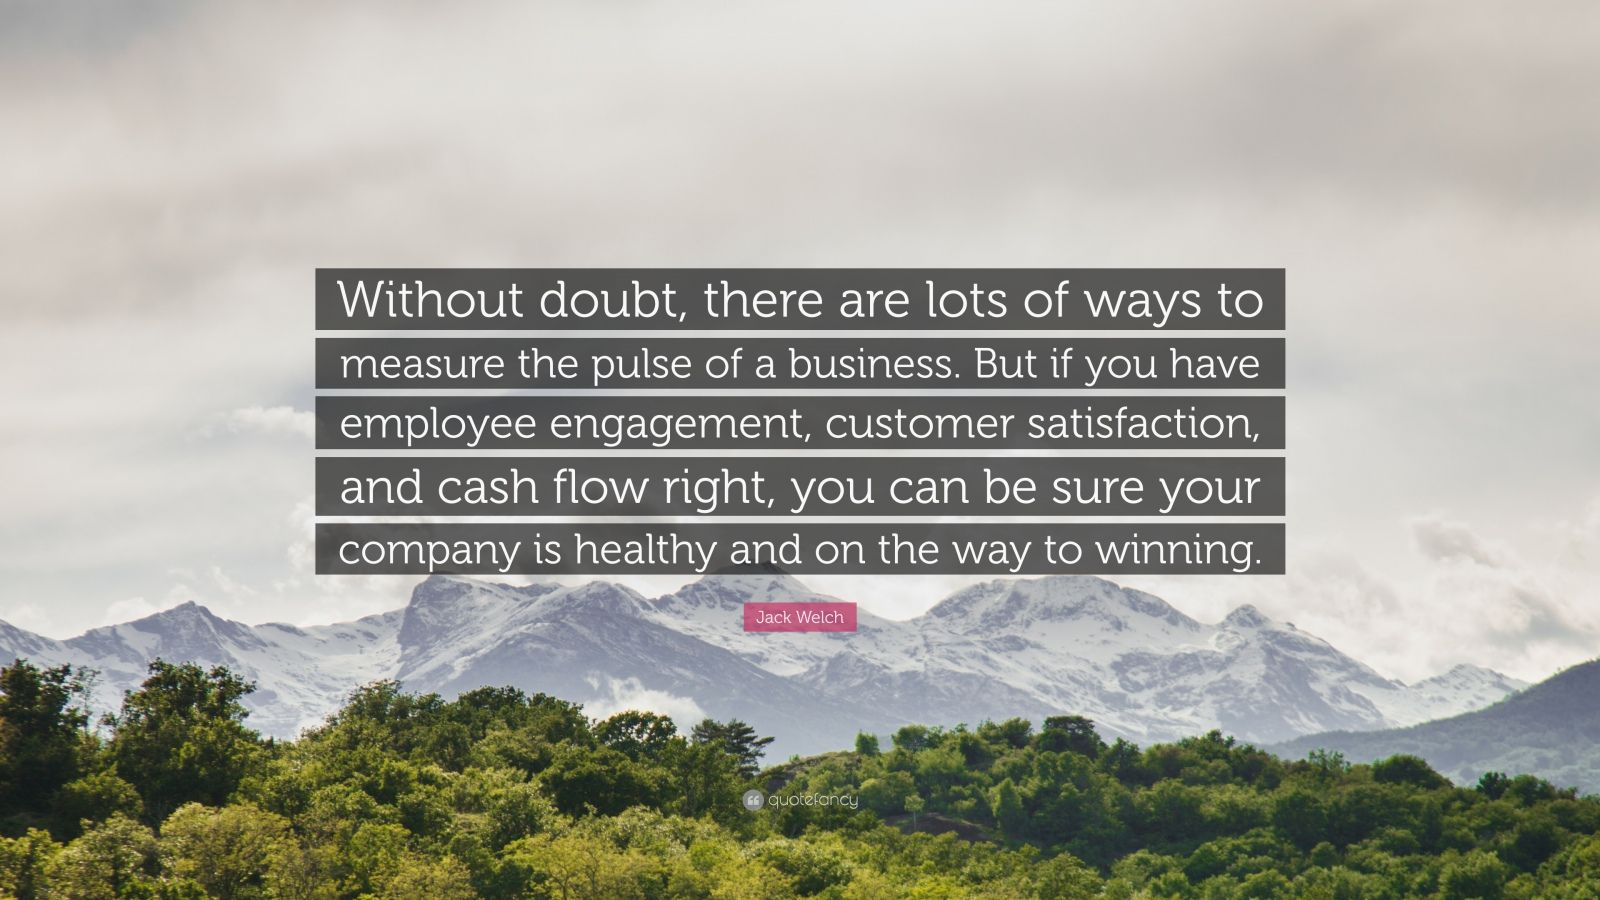 """Jack Welch Quote: """"Without doubt, there are lots of ways to measure the pulse of a business. But if you have employee engagement, customer satisfaction, and cash flow right, you can be sure your company is healthy and on the way to winning."""""""